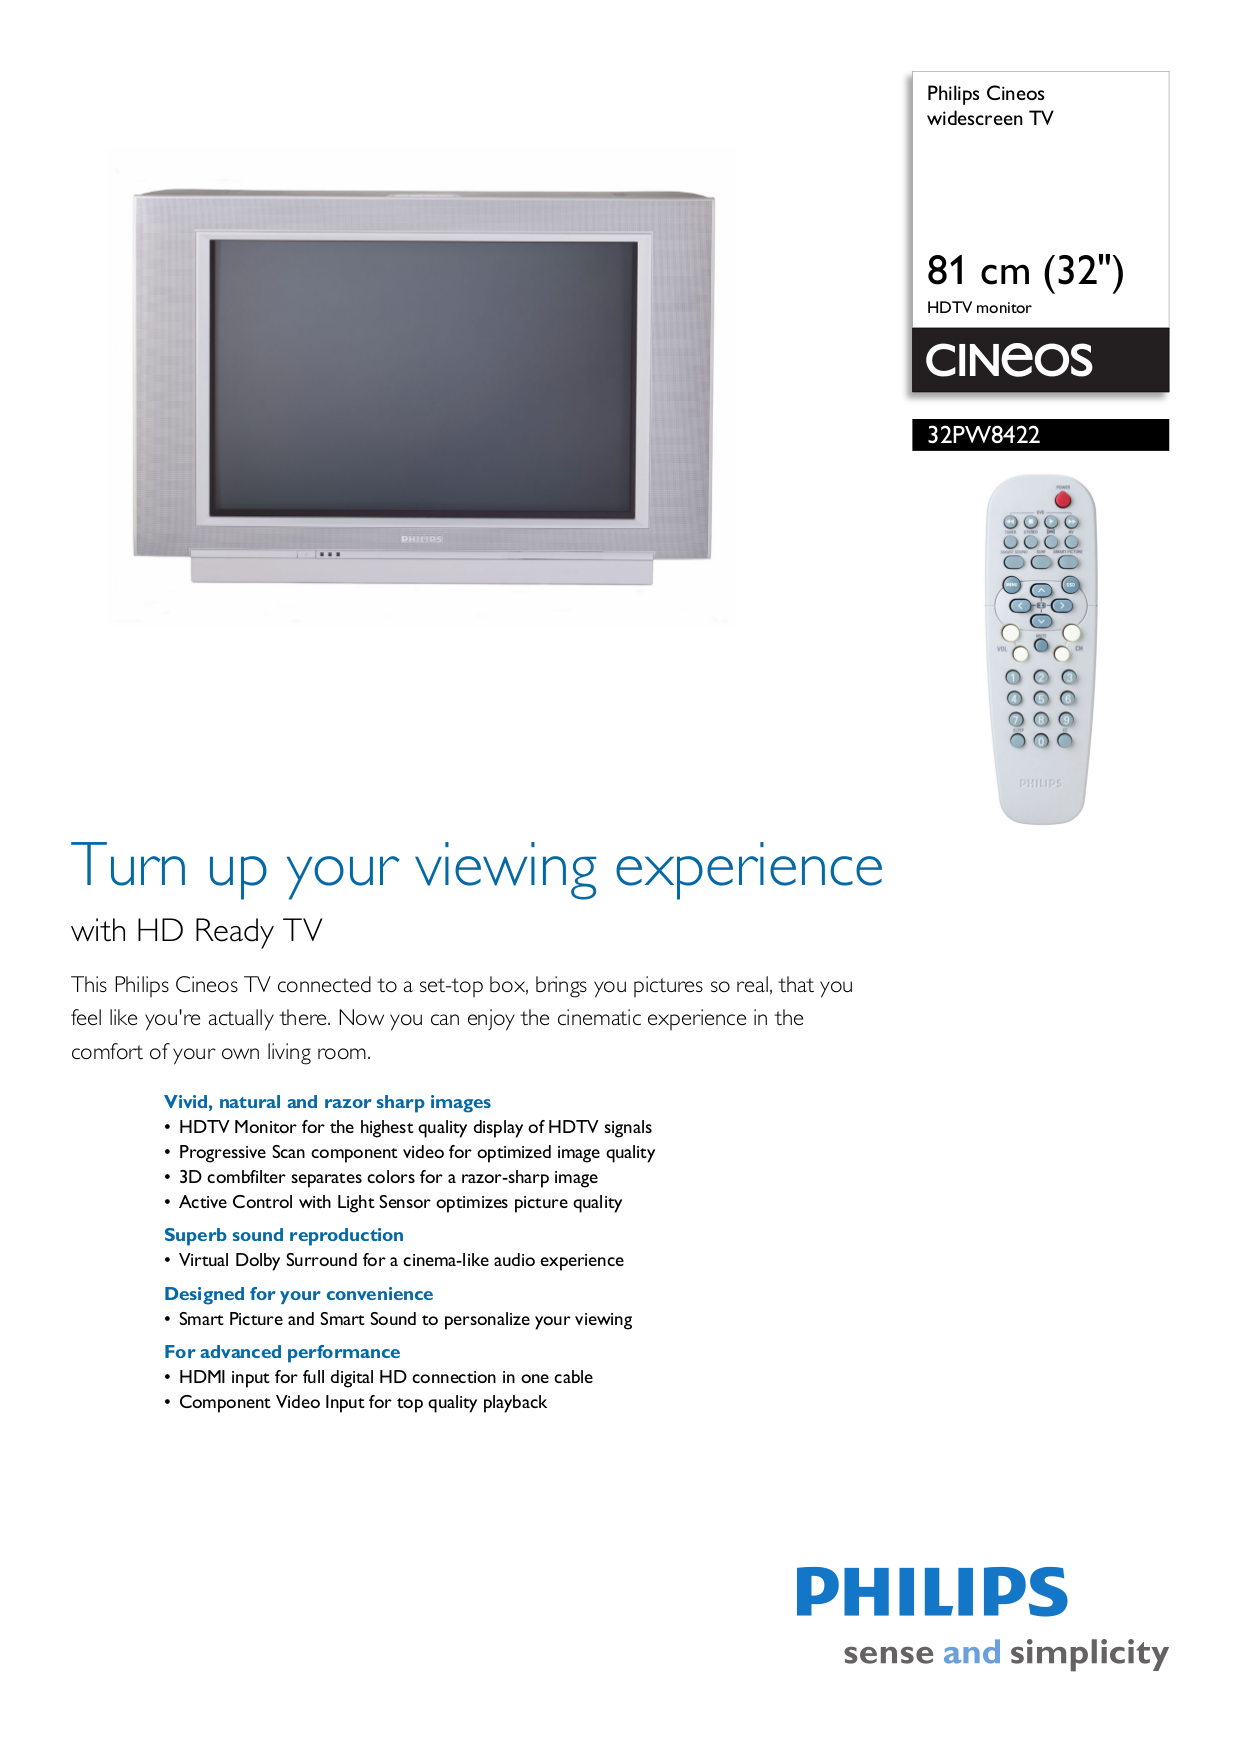 download free pdf for philips 32pw8422 tv manual rh umlib com philips cineos hts9800w user manual Philips Remote Manual